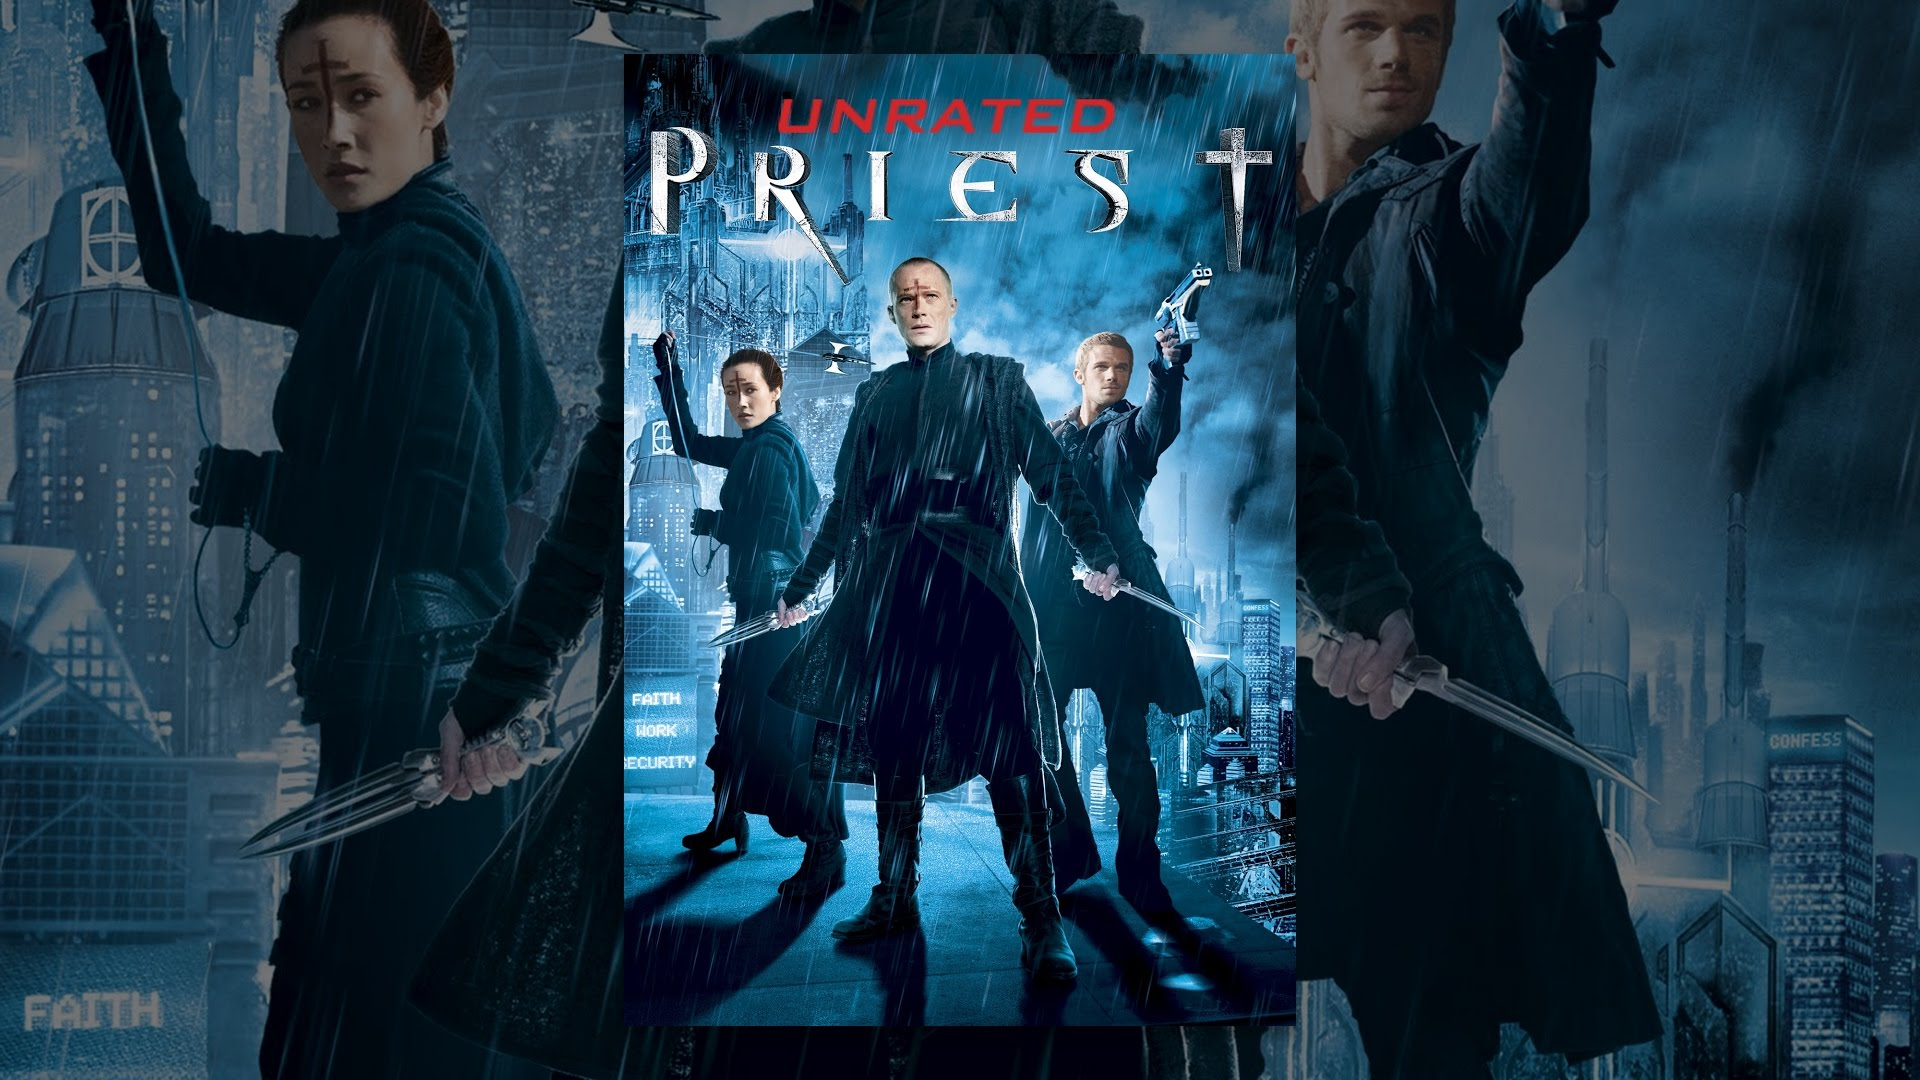 Download Priest Unrated